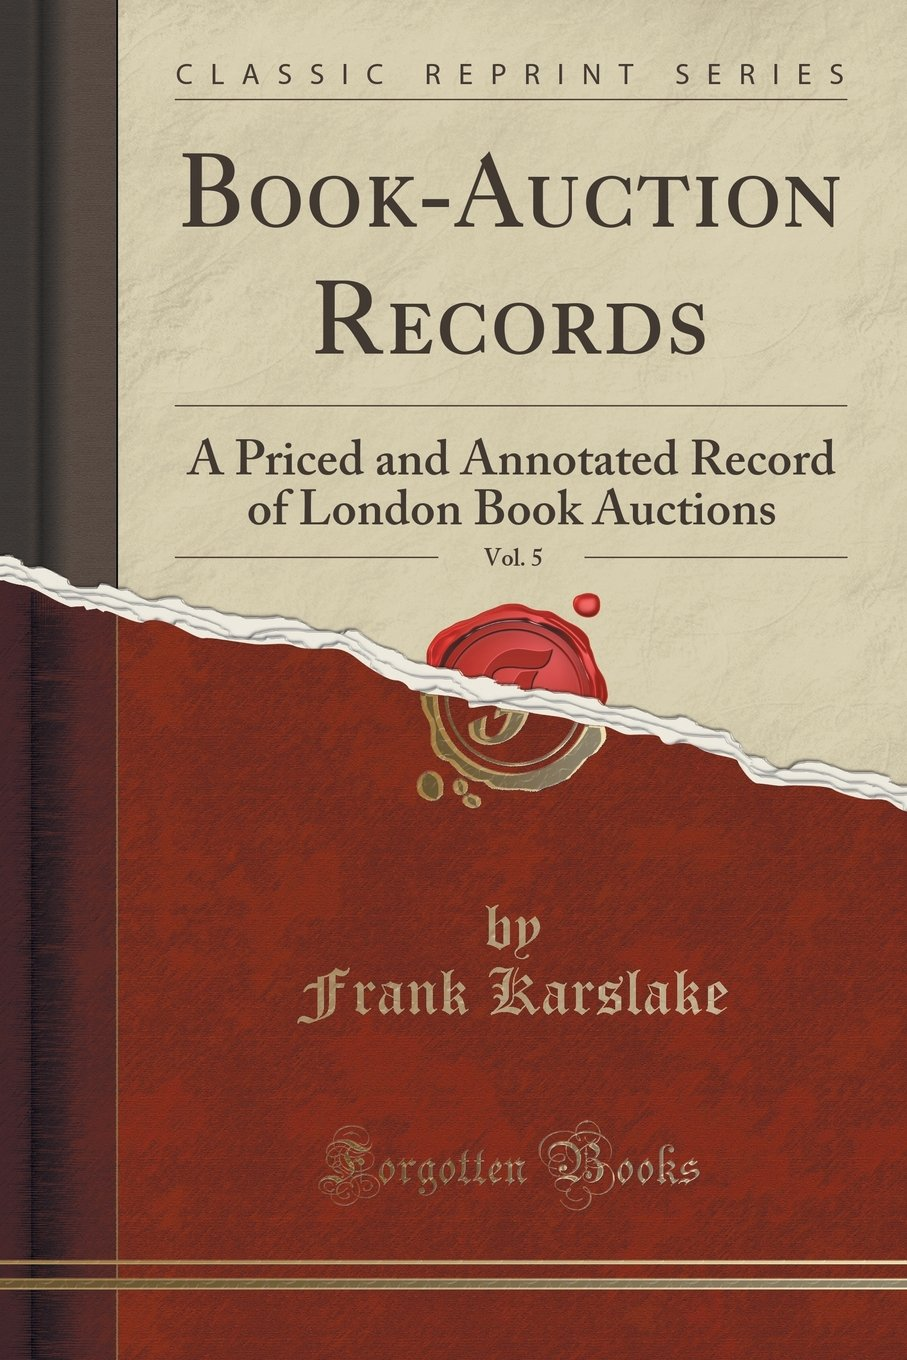 Book-Auction Records, Vol. 5: A Priced and Annotated Record of London Book Auctions (Classic Reprint) ebook